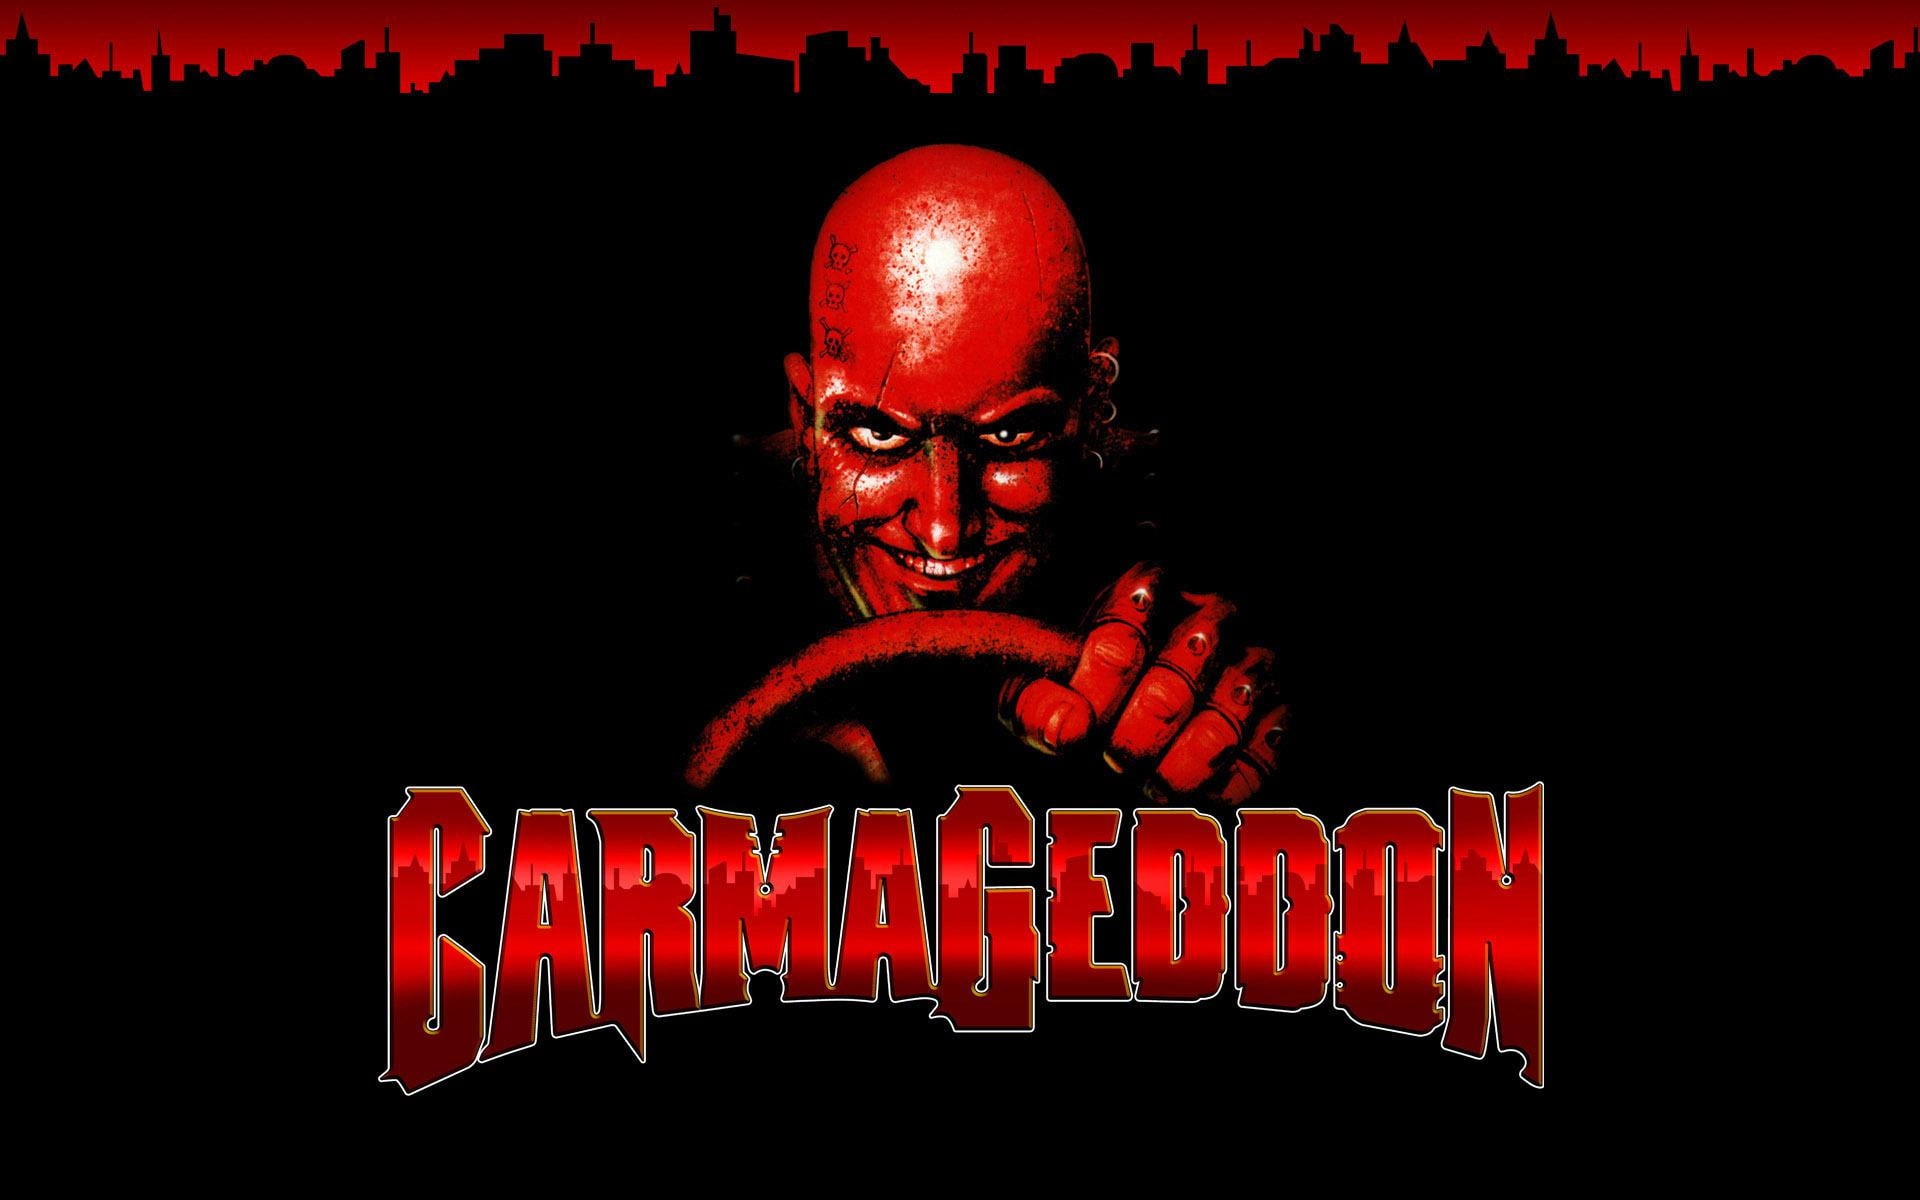 HD wallpaper carmageddon game reincarnation Wallpaper Flare 1920x1200